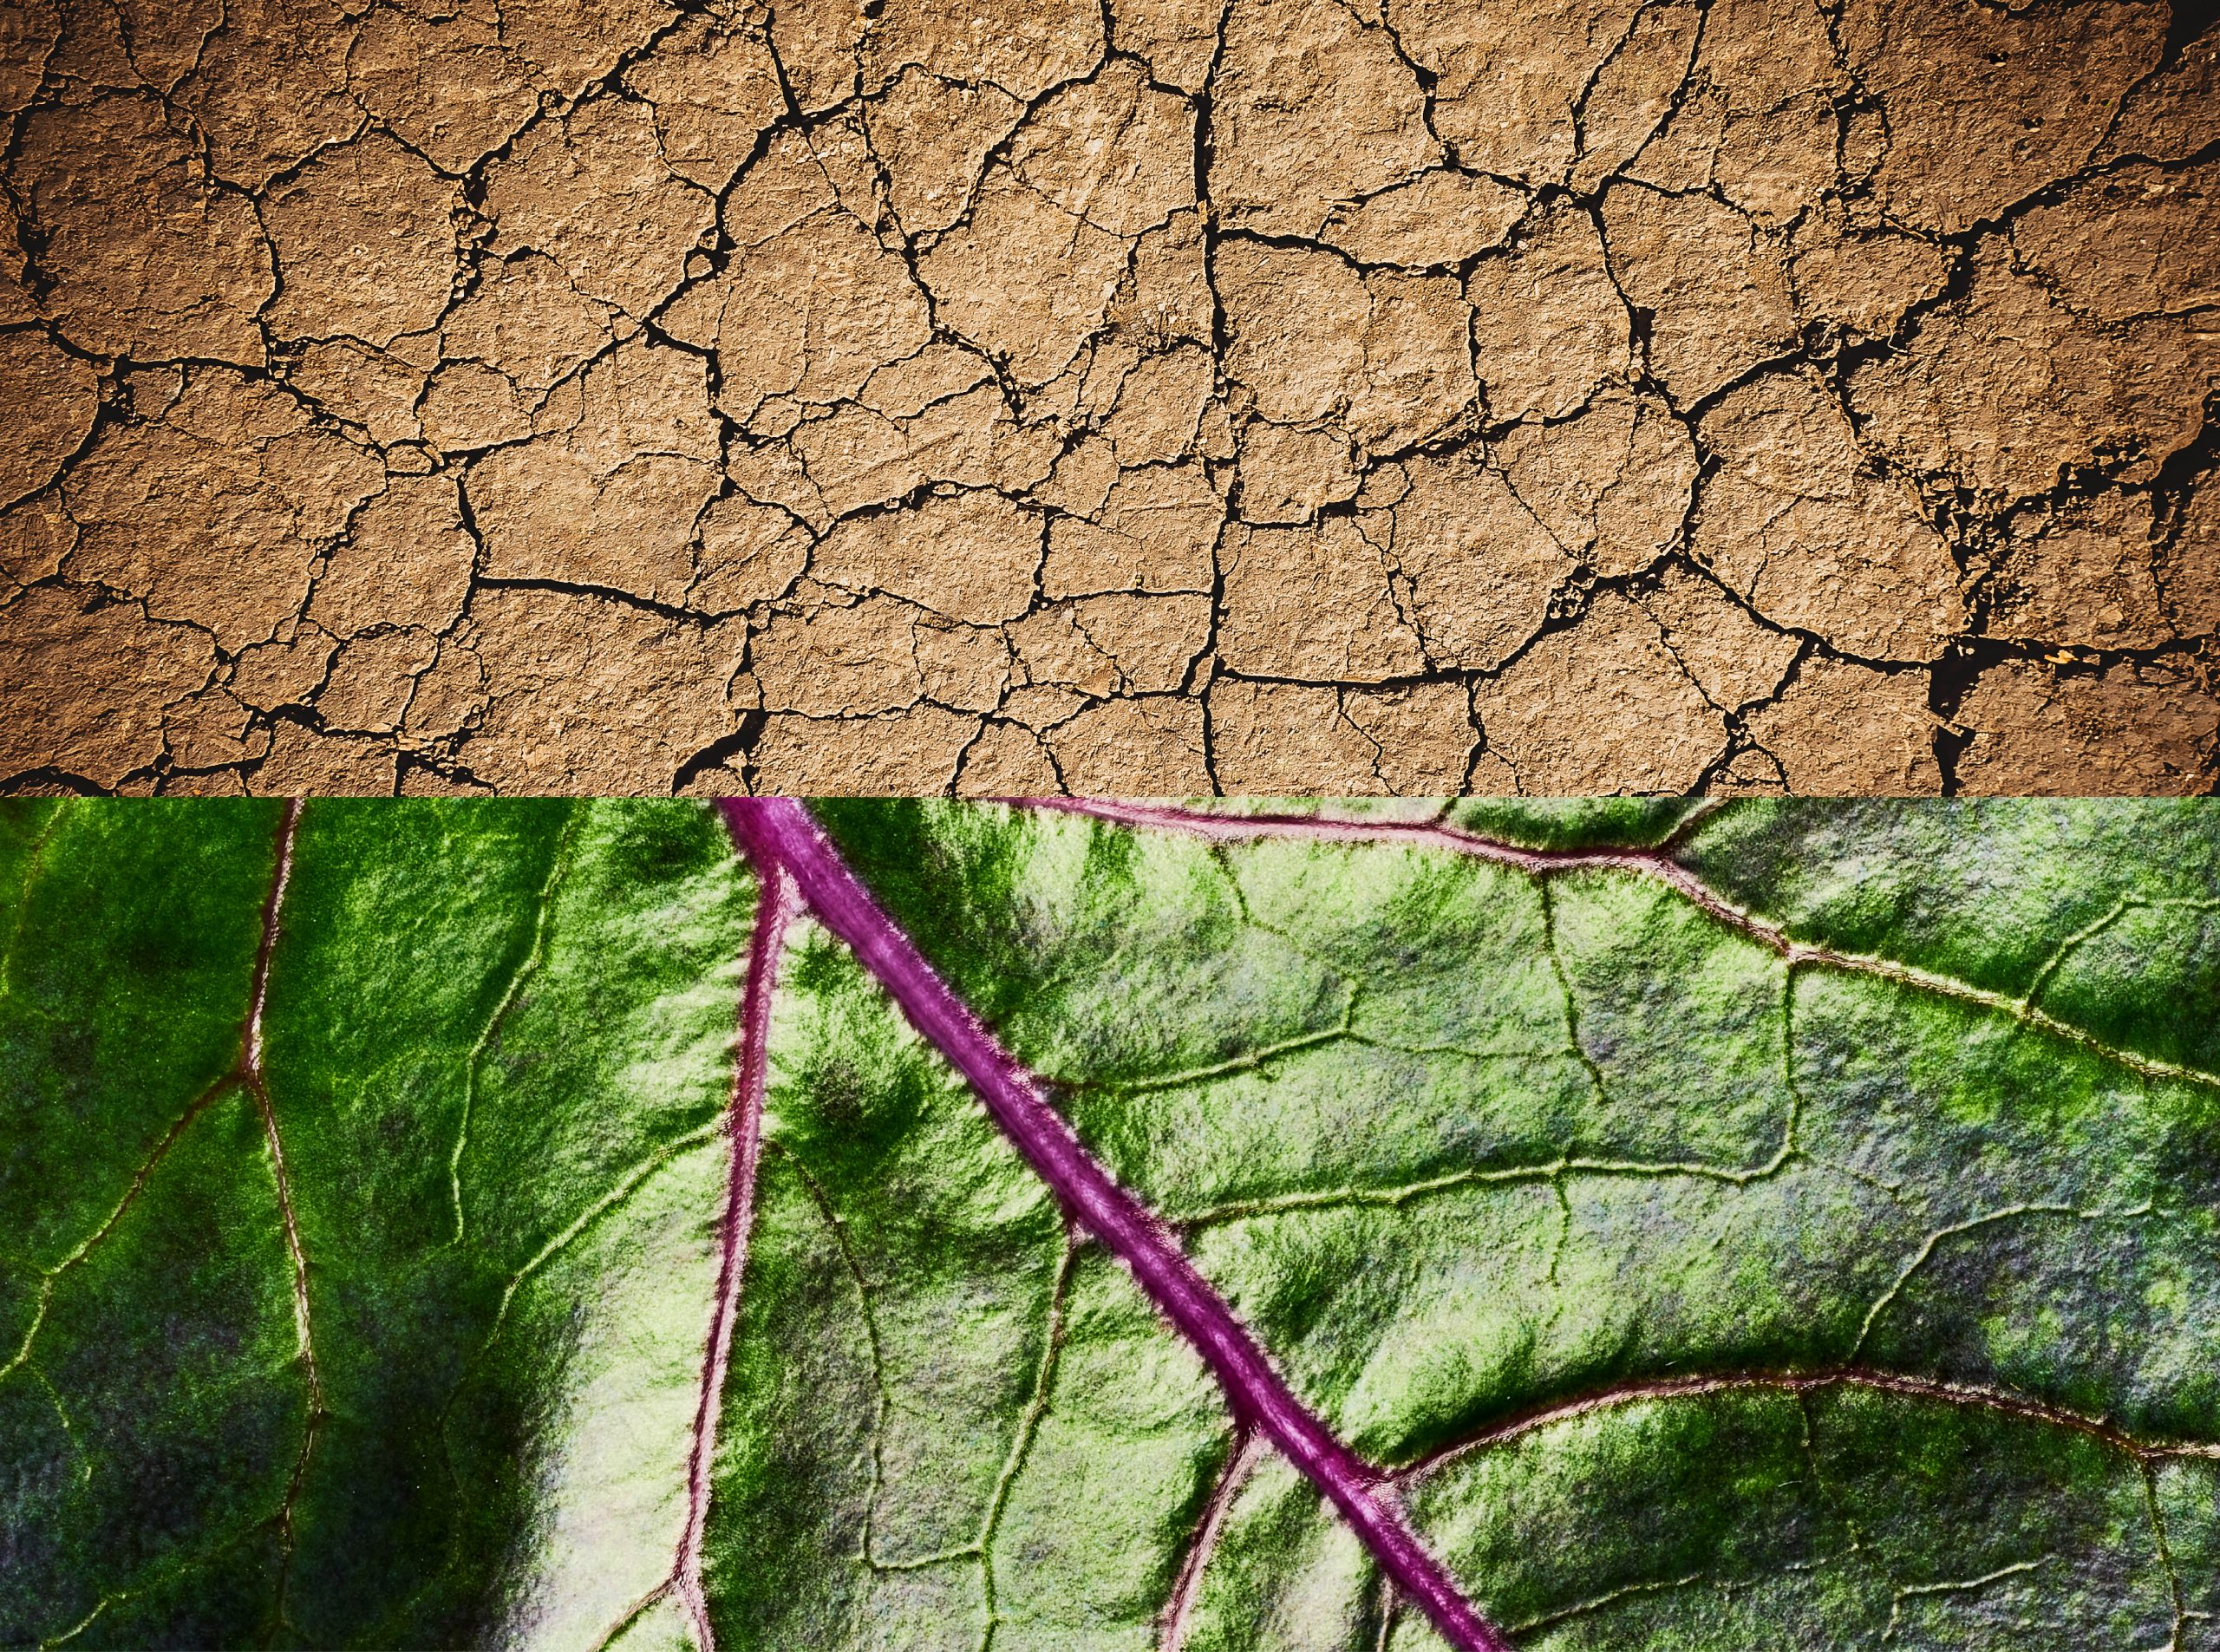 CRACKED EARTH AND MICRO LEAF SHOT